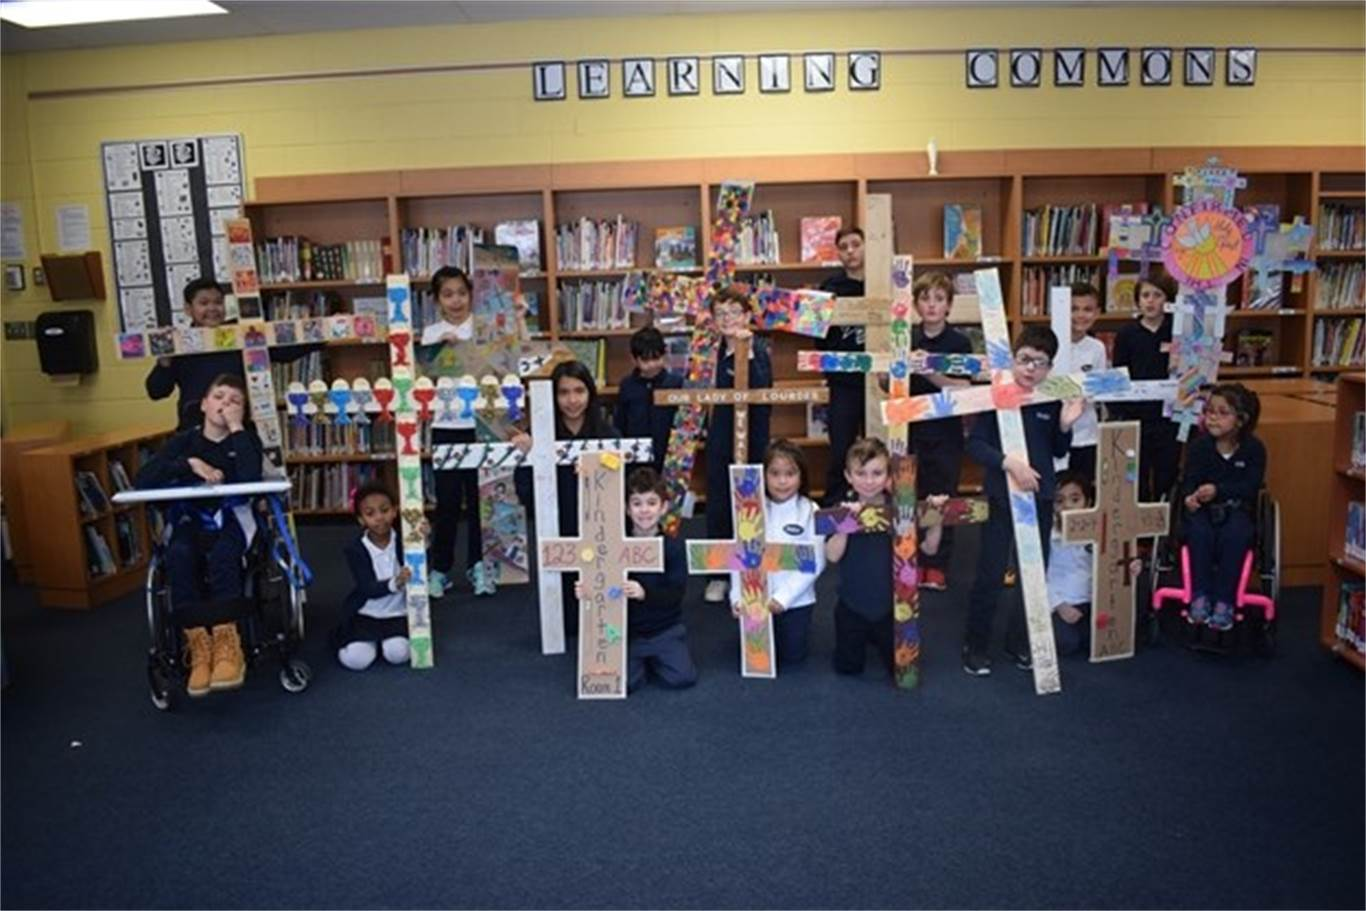 Our Lady of Lourdes students show off the 14 personalized crosses each class created to show their Catholic identity. Photo courtesy of Hamilton Mountain News.